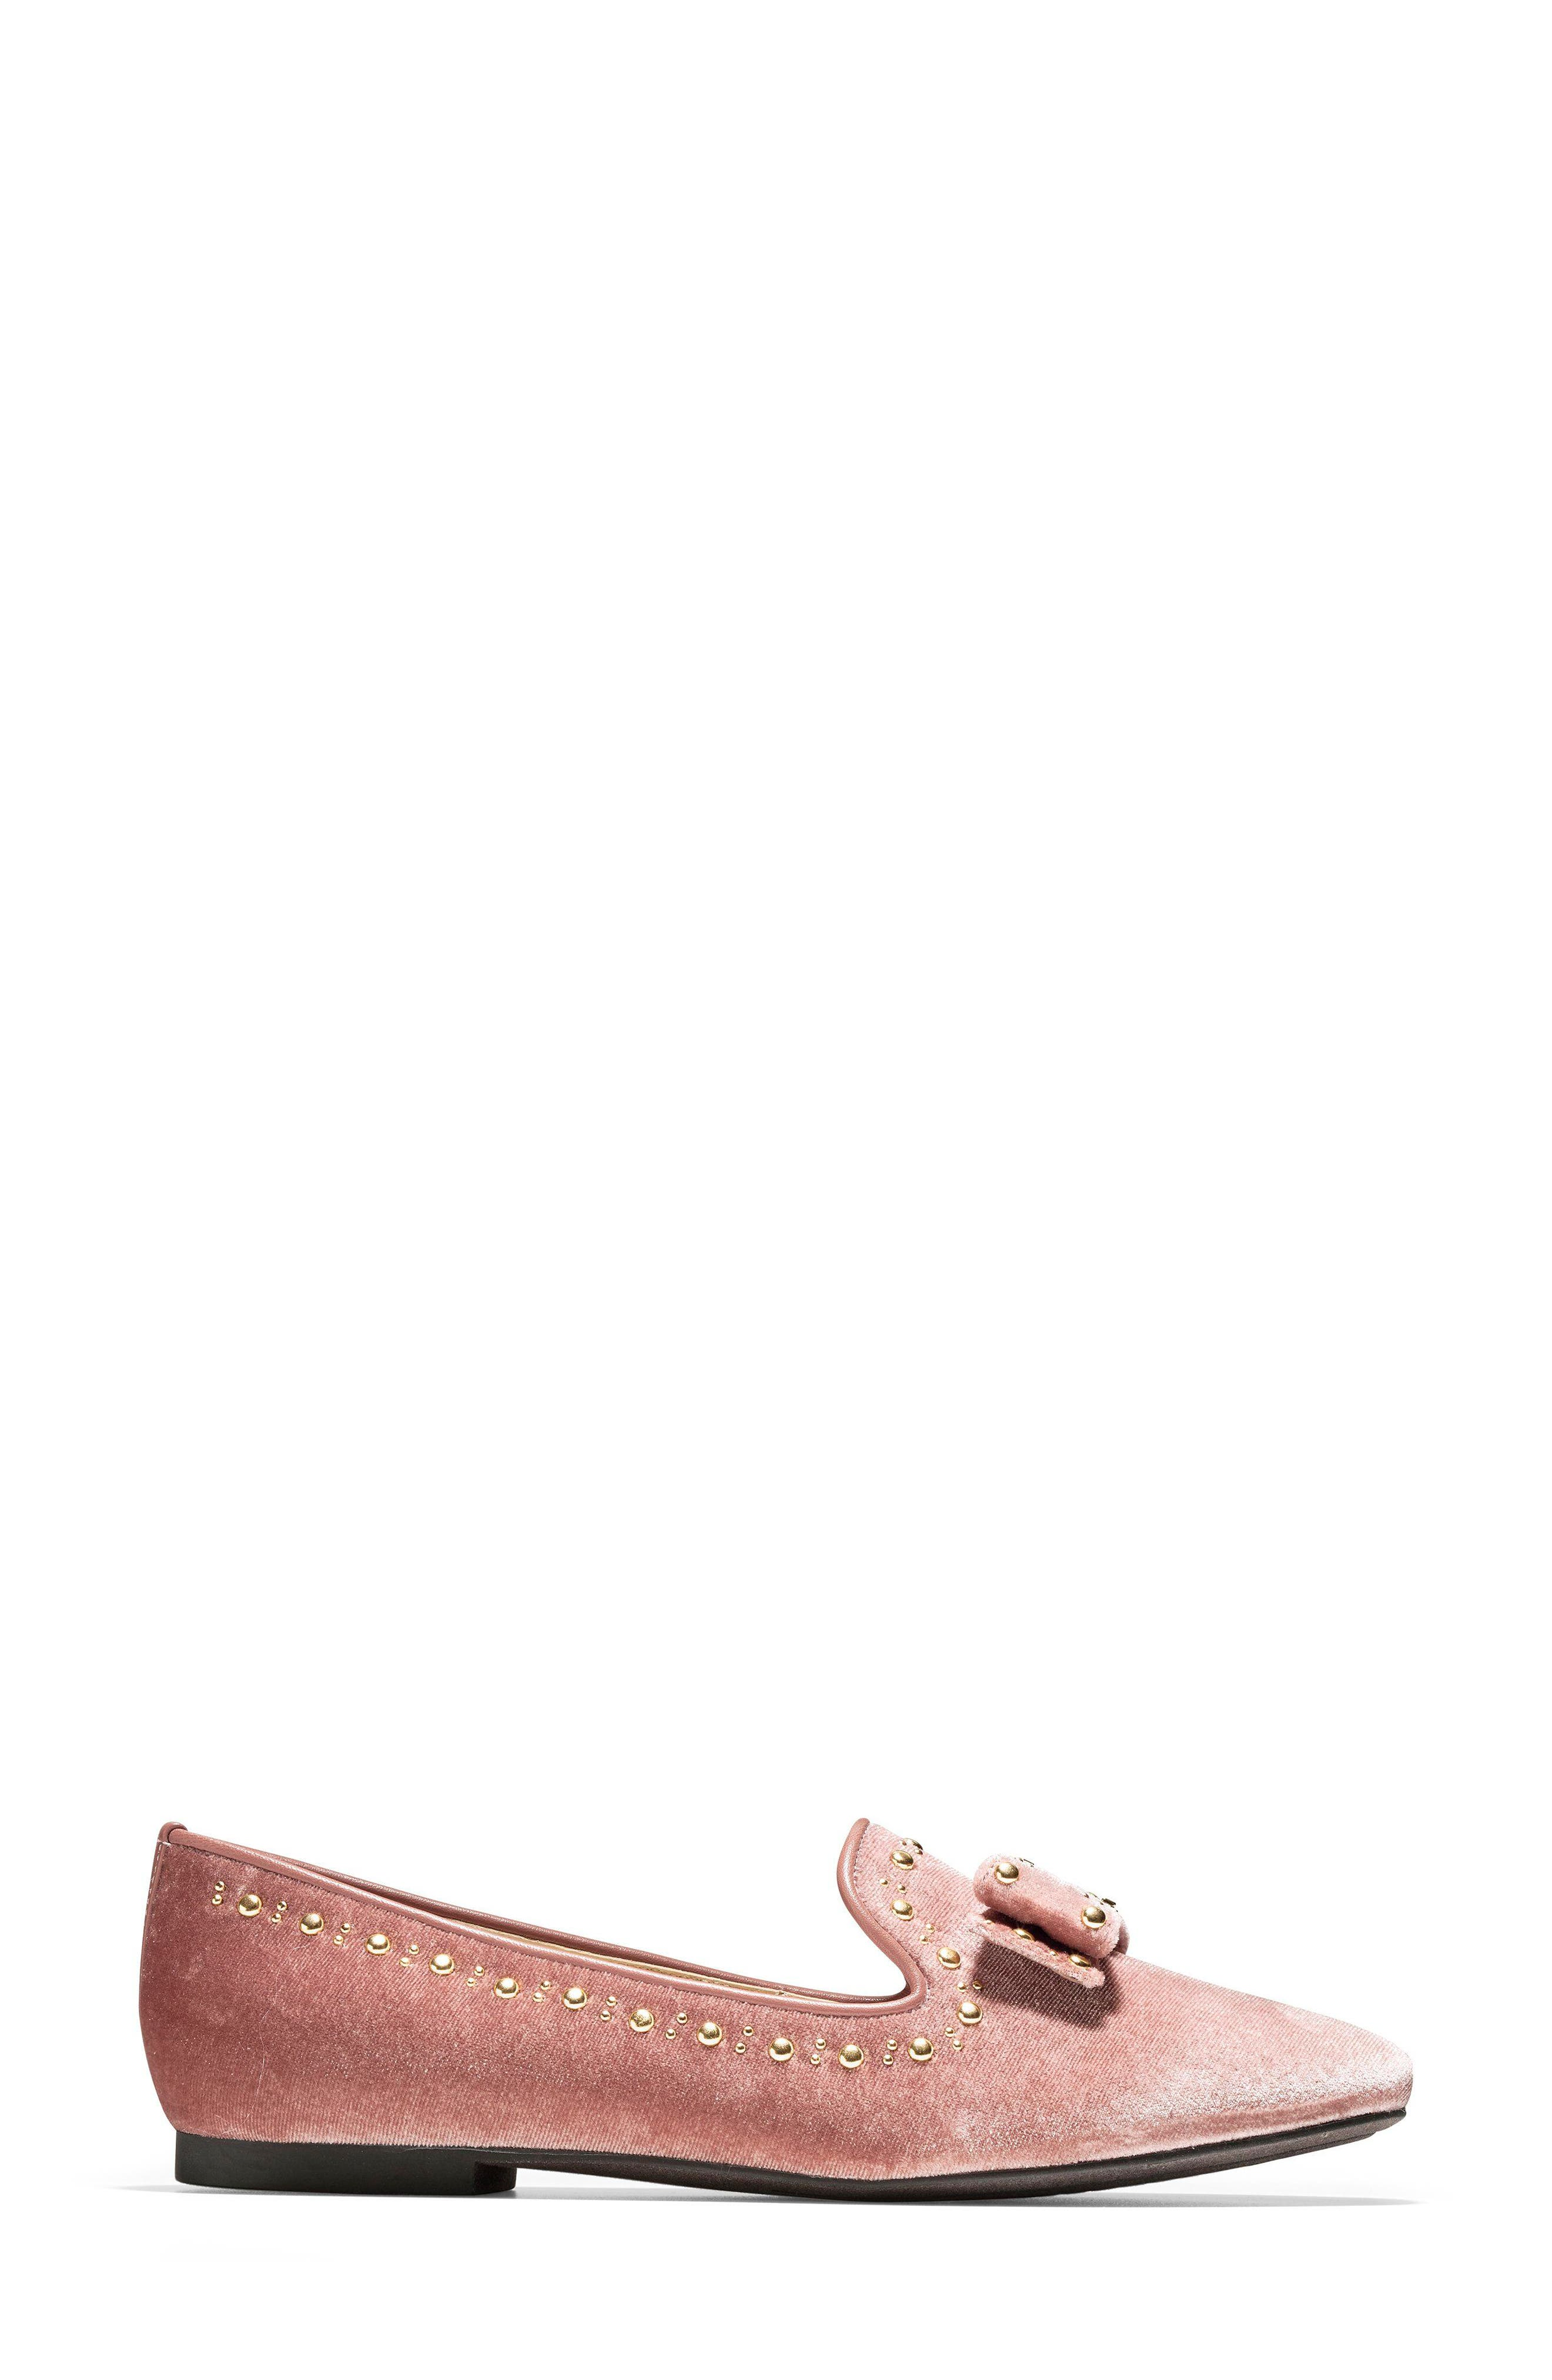 Tali Bow Loafer,                             Alternate thumbnail 8, color,